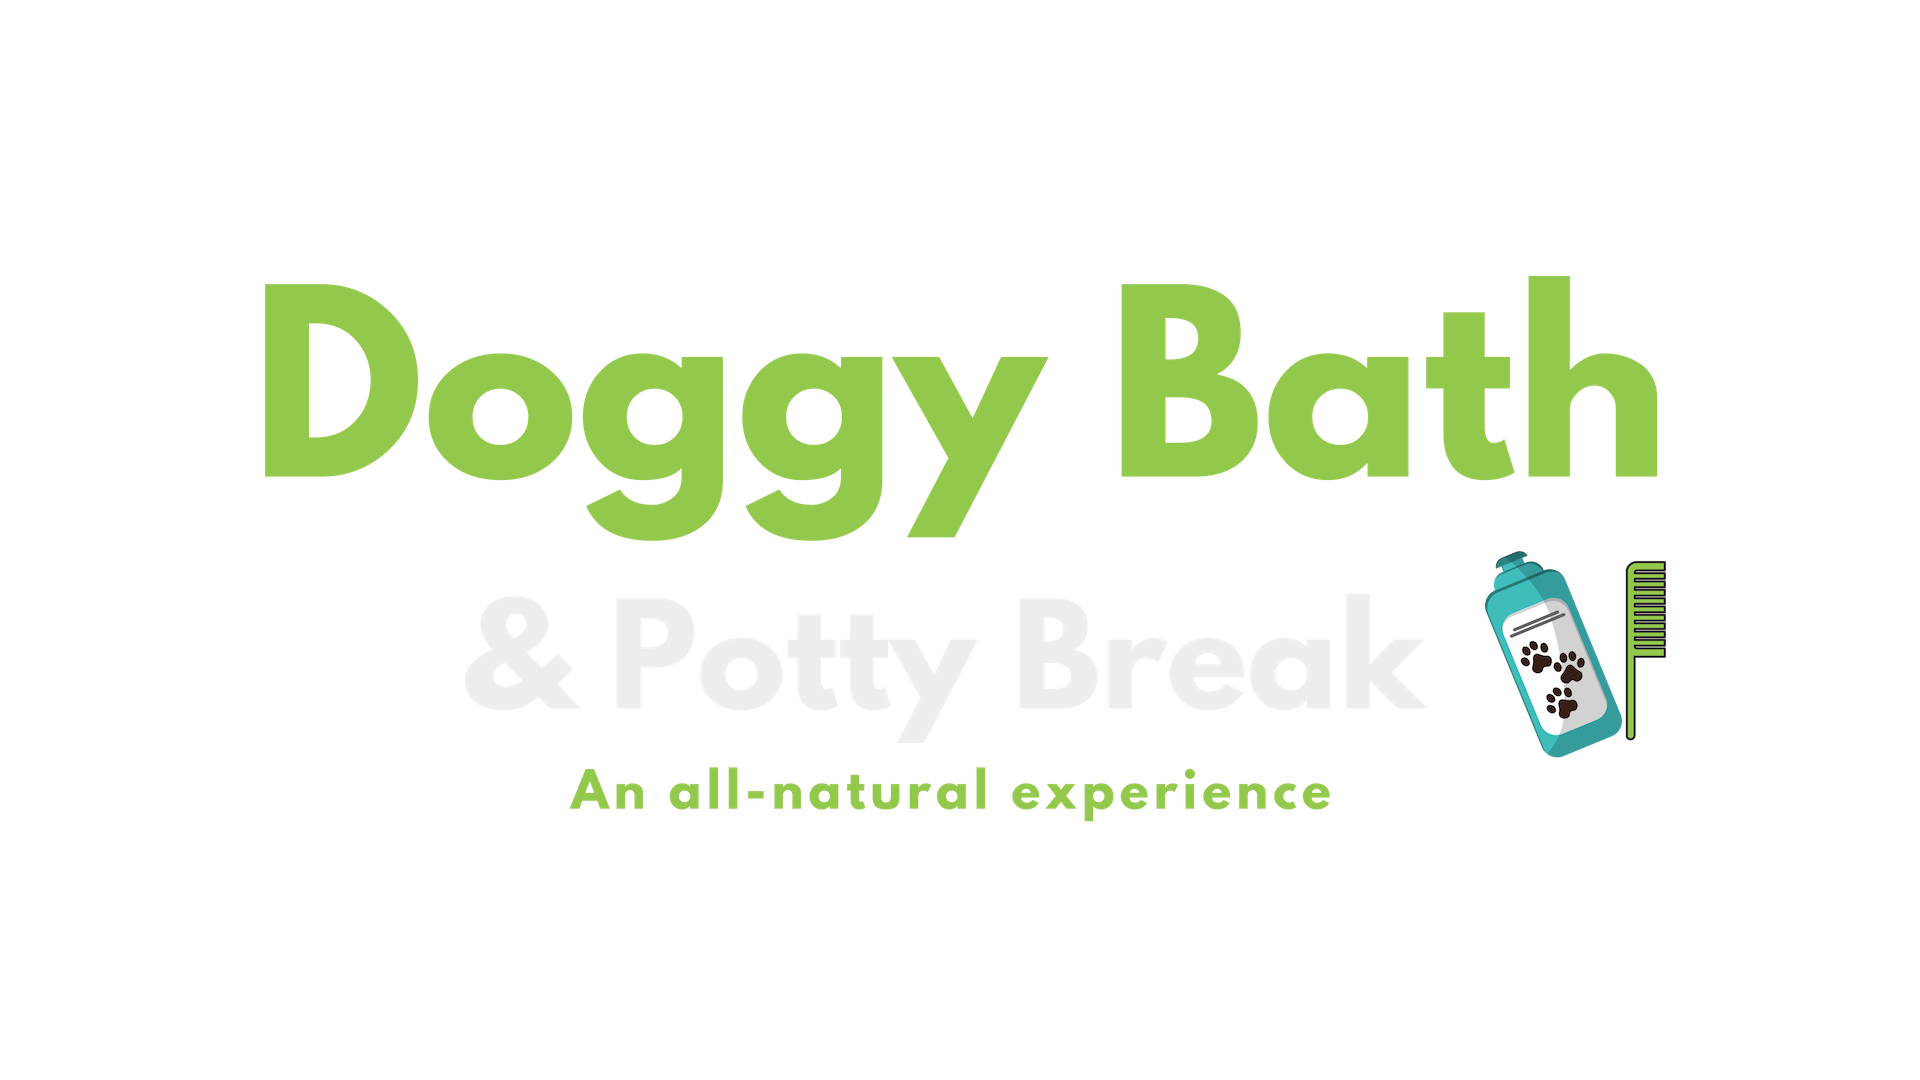 - A full bath and hand dry by our Pet Stylist team. Potty Break included.Small Dog (35lb or less) - $54Medium Dog (36lb-60lb)- $60Large Dog (61lb- 100lb) - $66**For pups over 100lbs, please call for pricing.